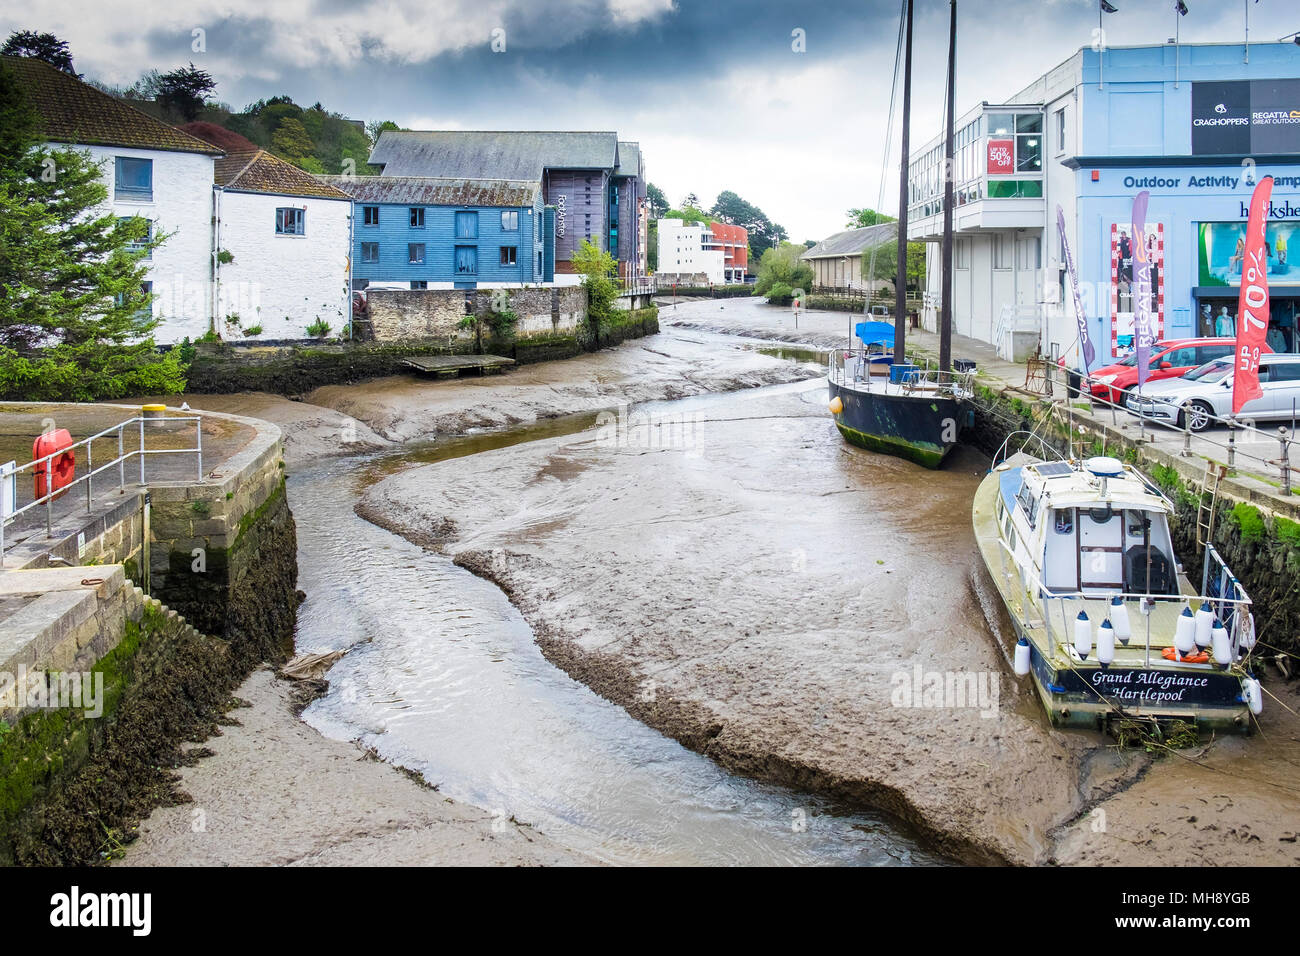 The River Kenwyn joining the Truro River in Truro City centre in Cornwall. - Stock Image